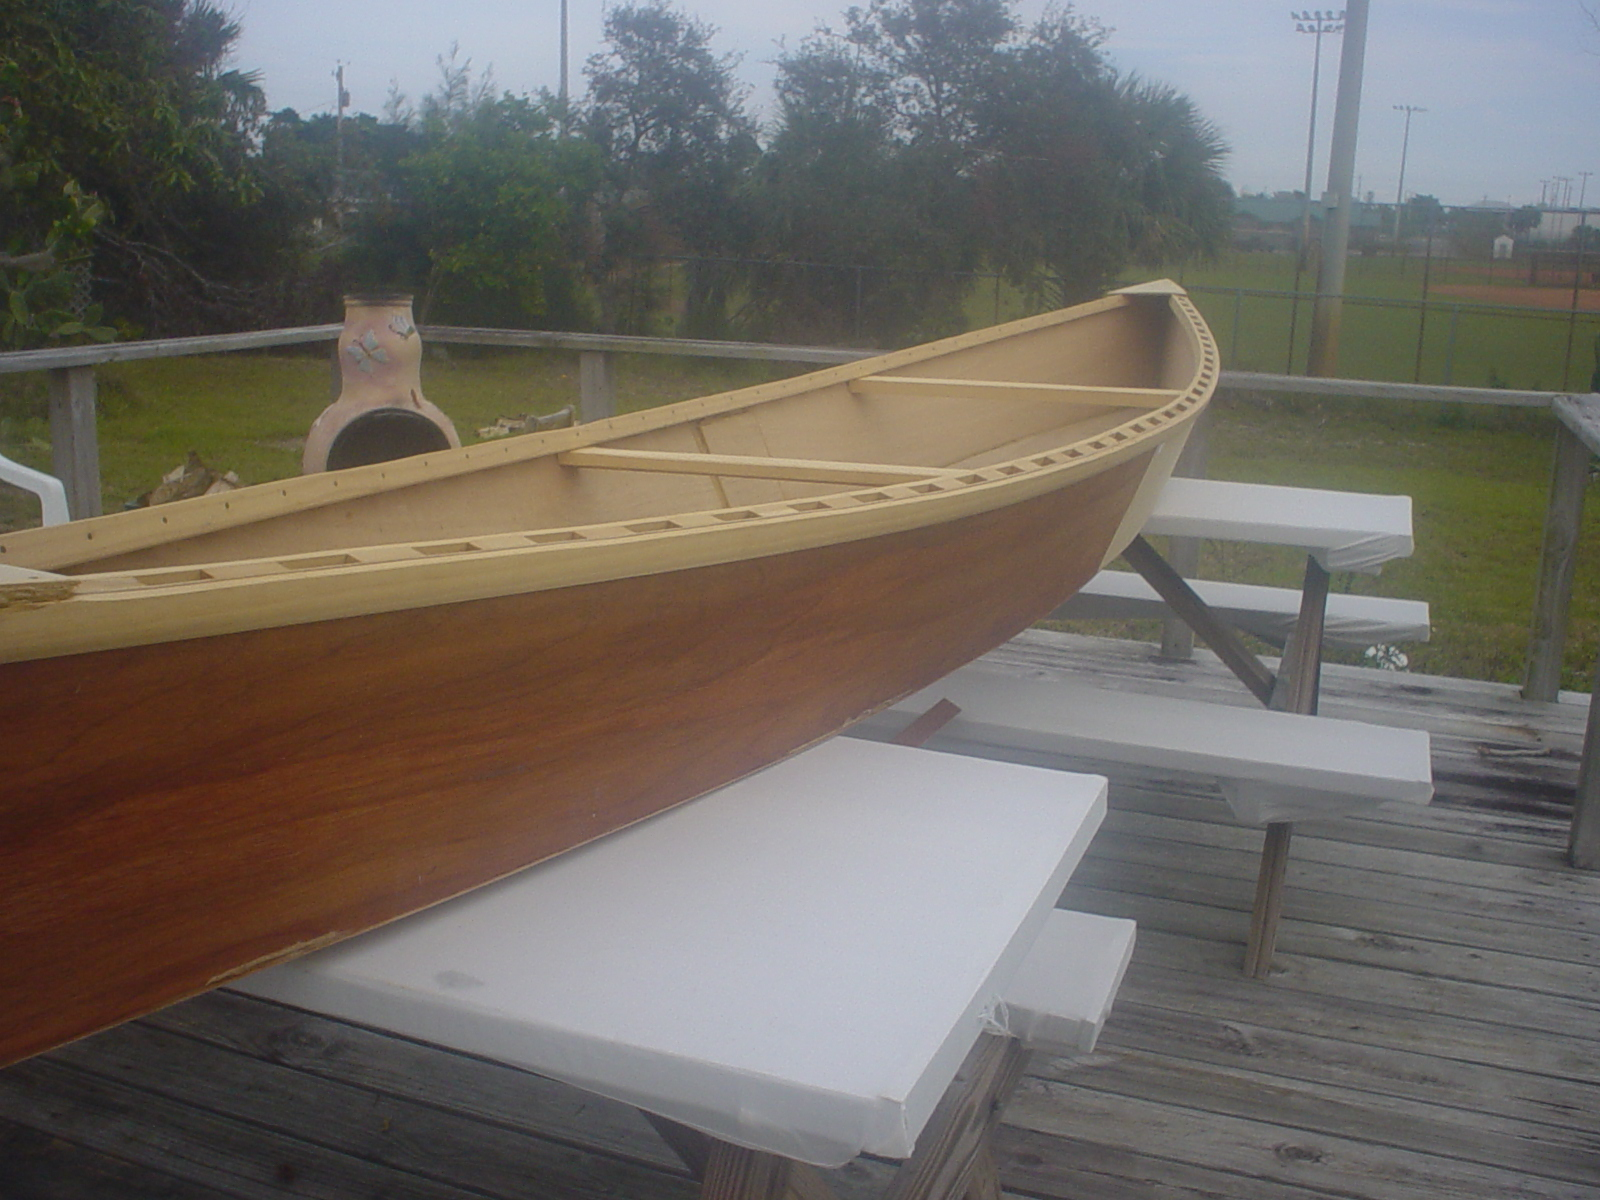 Anet: Stick And Glue Boat Plans Free